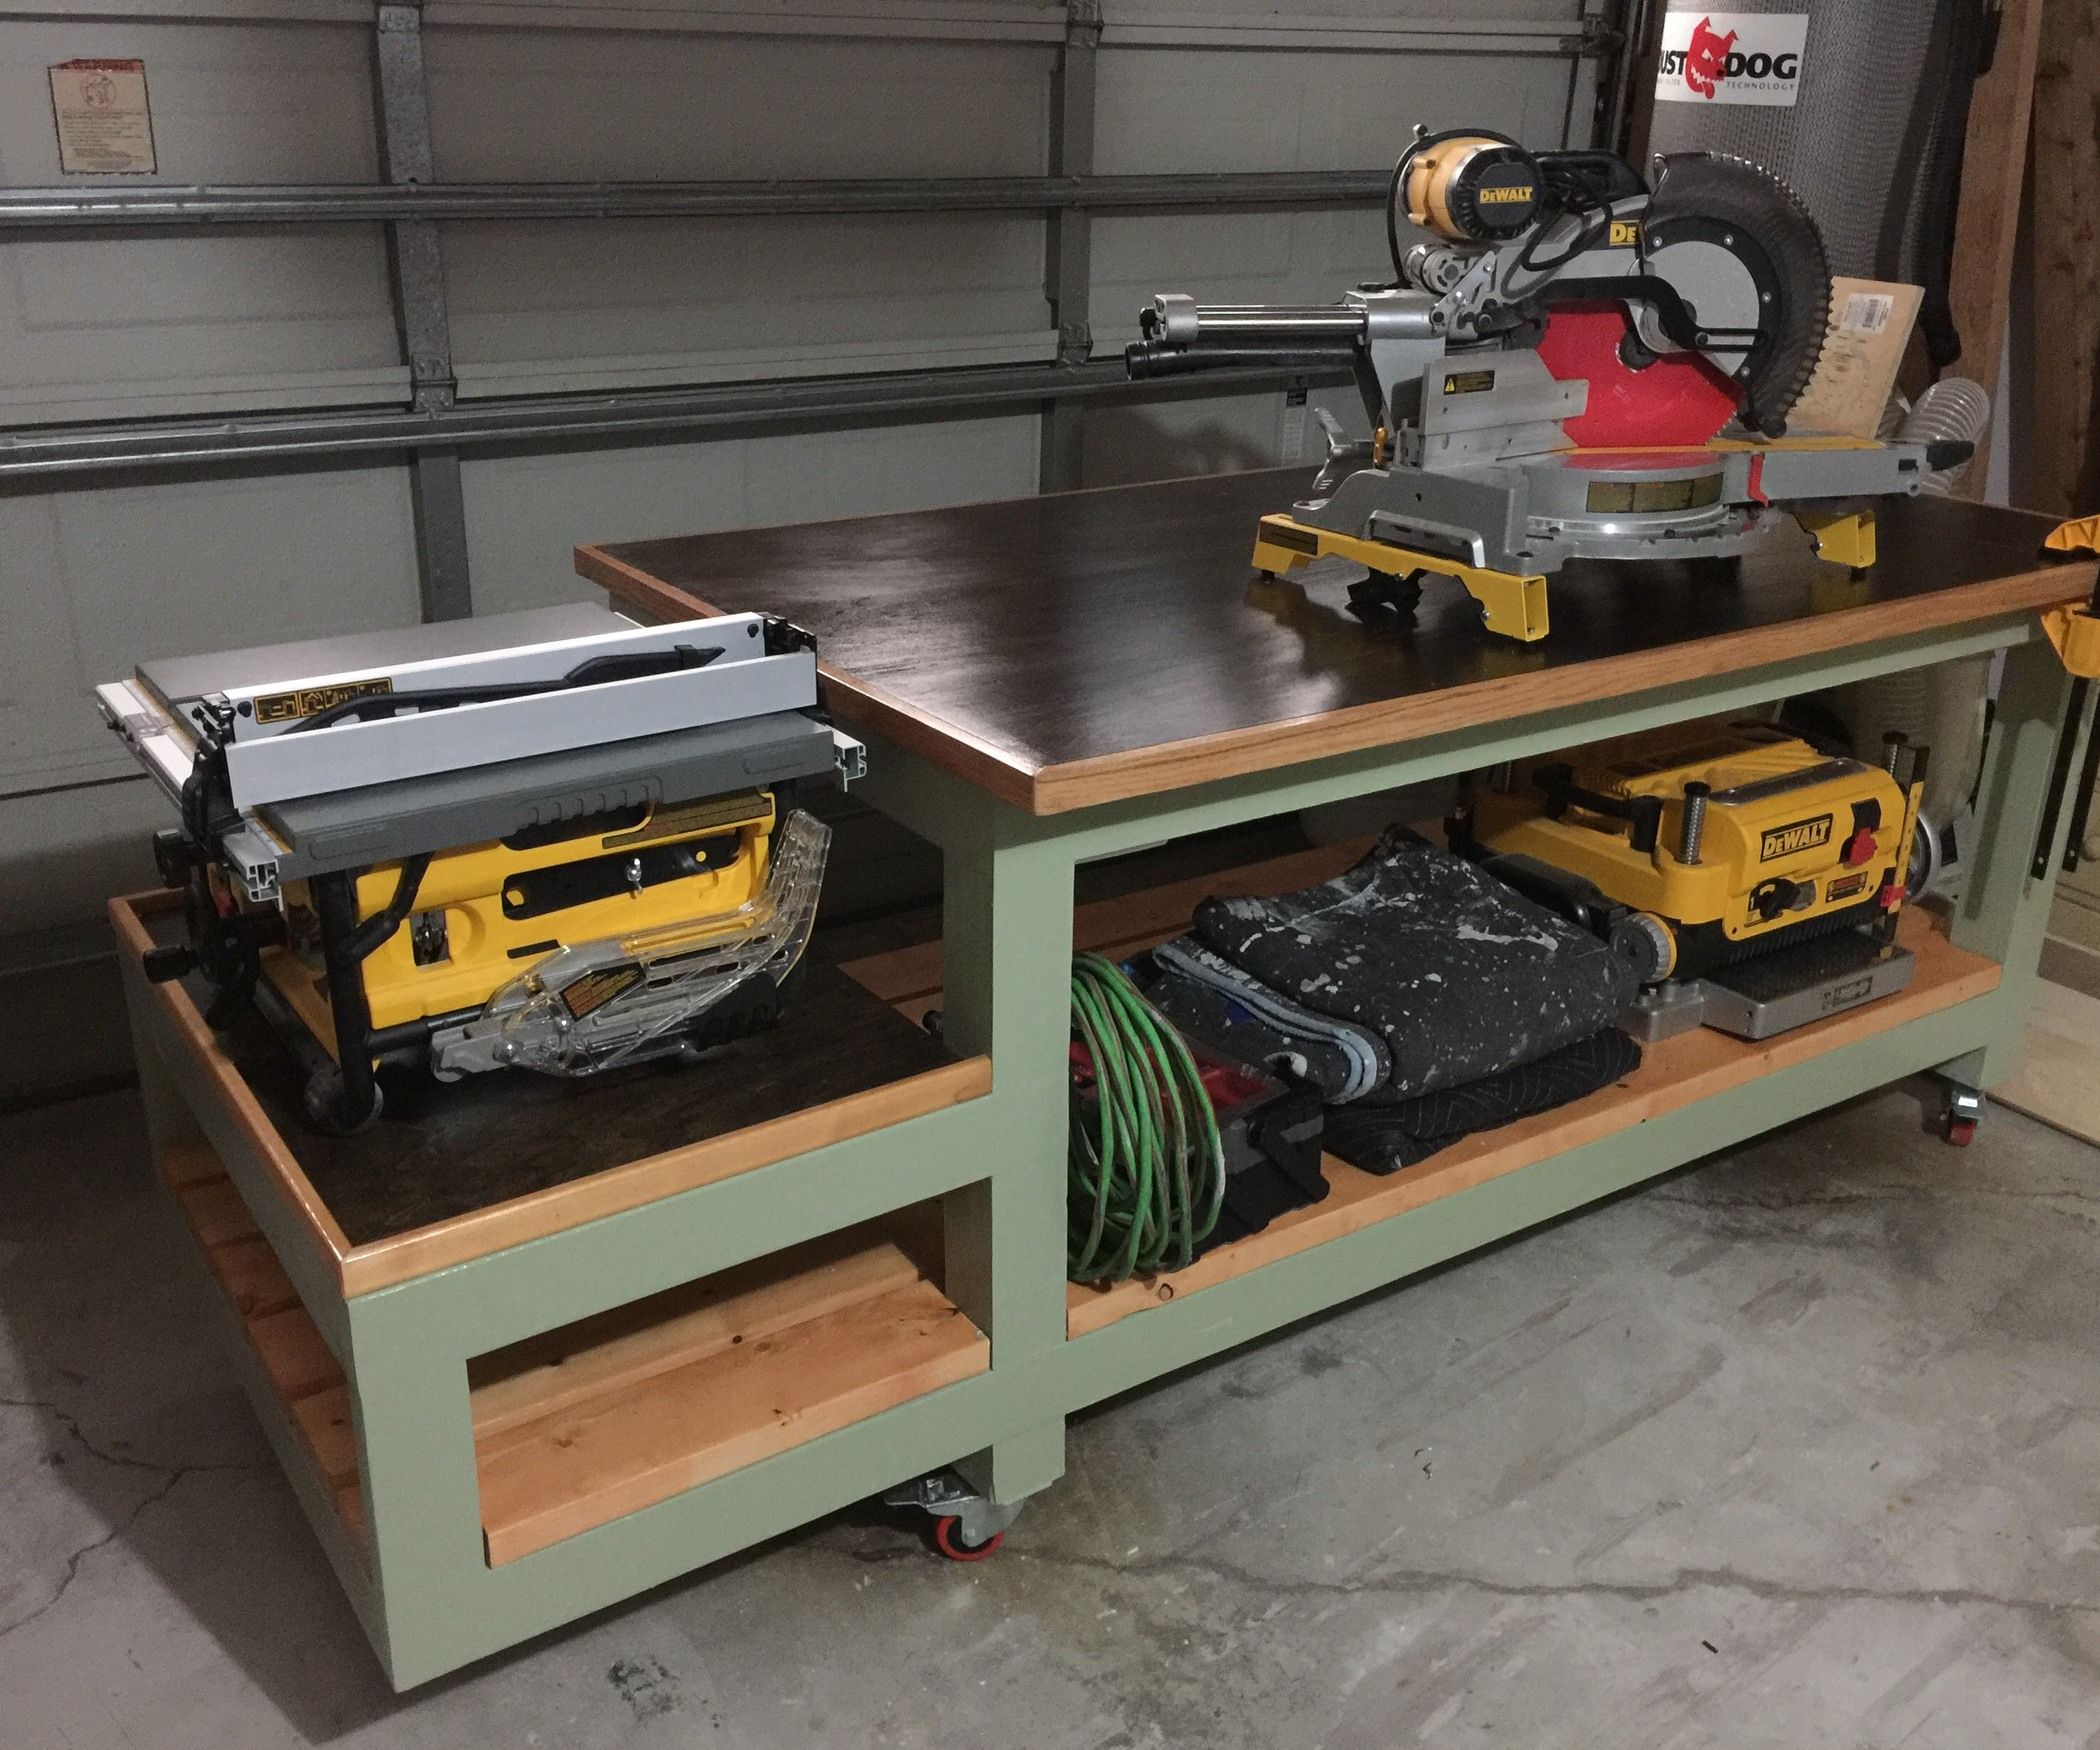 Woodworking Tool Bench All In One Work Bench Work Pinterest Garage